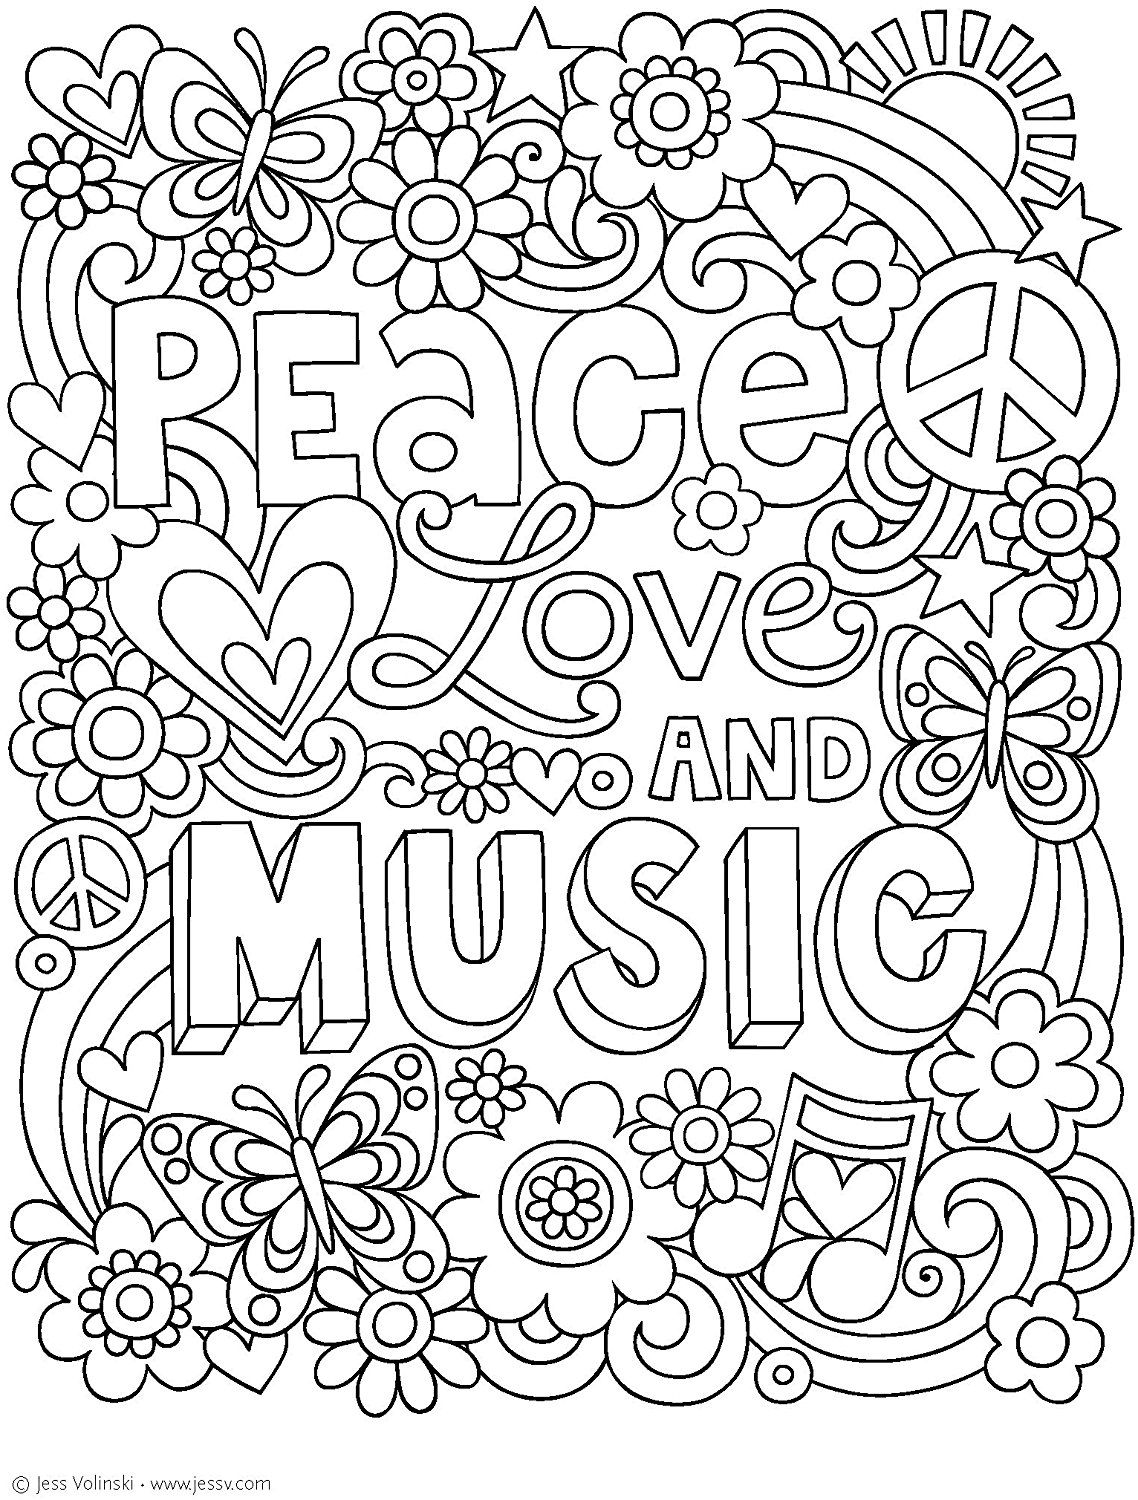 Notebook Doodles Peace, Love, and Music: Coloring ...